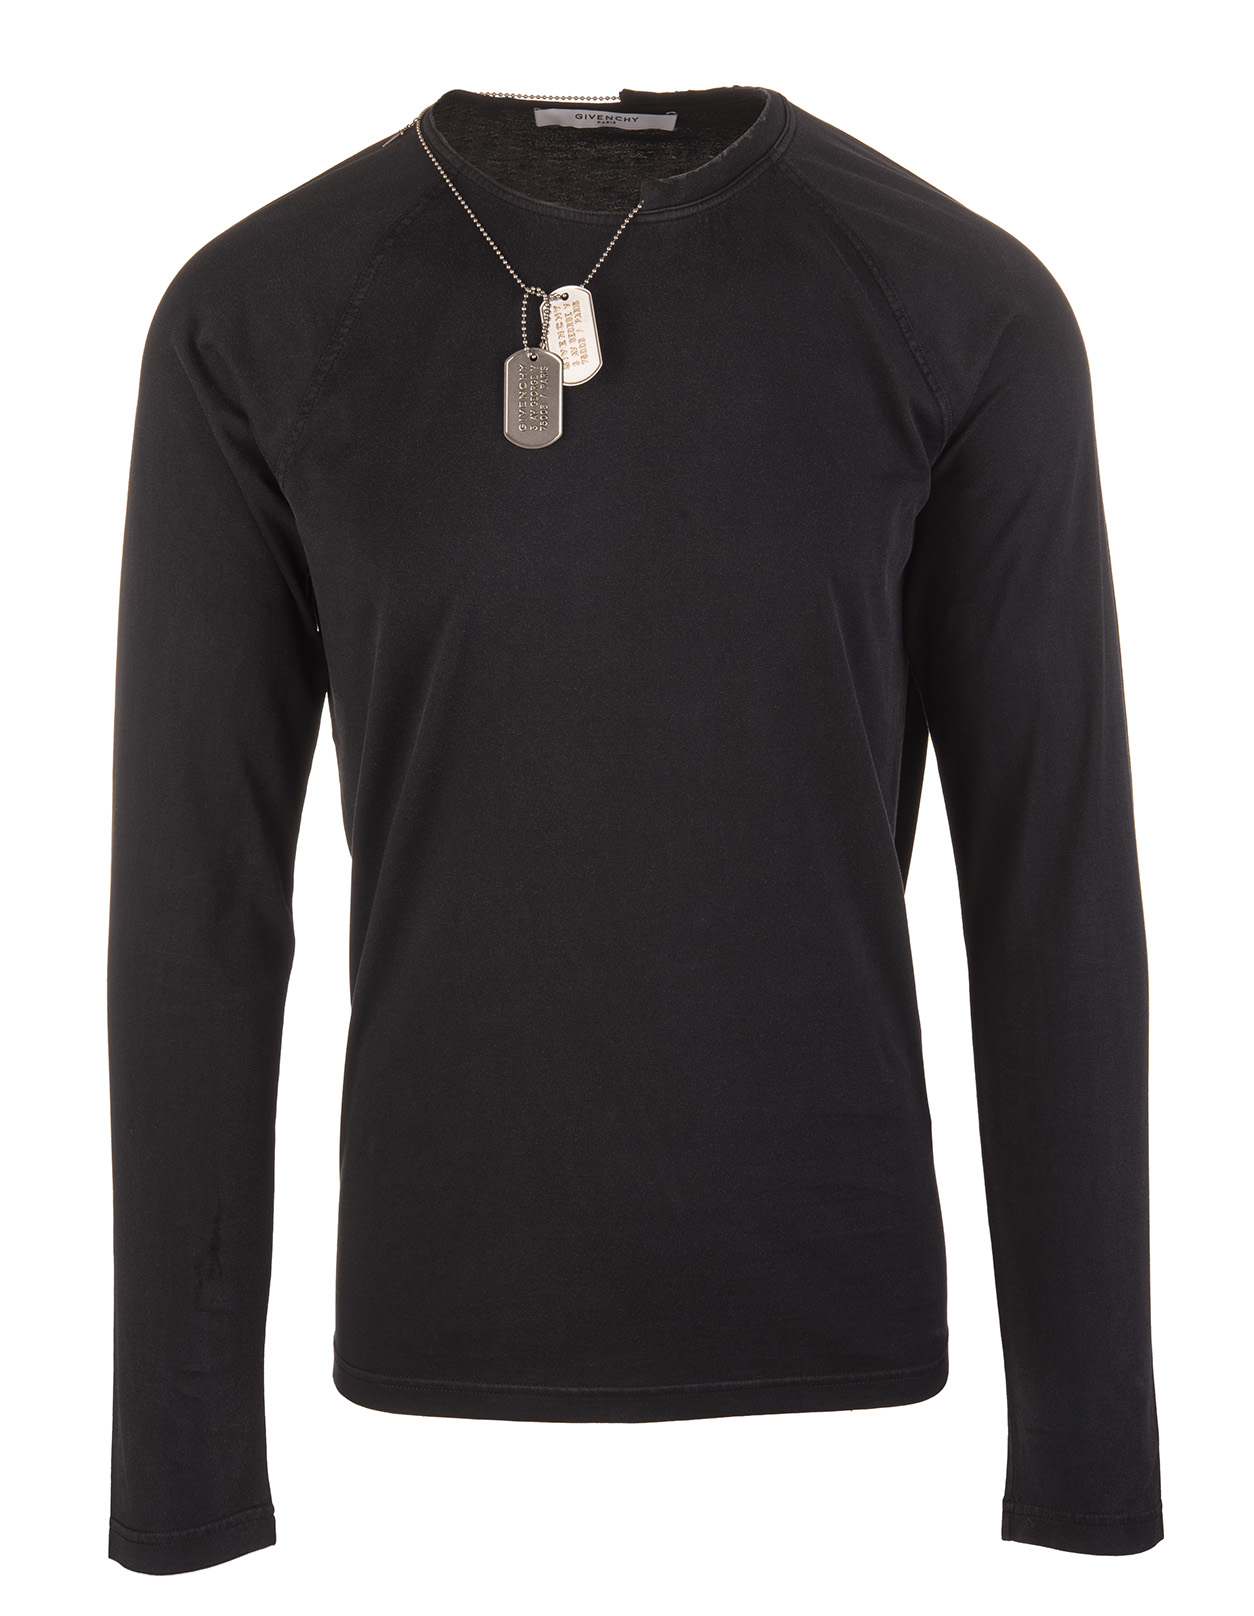 8356a1bade4 Black Long Sleeve T-Shirt With Chain and Atelier GIVENCHY Stamp On The Back  - GIVENCHY - Russocapri